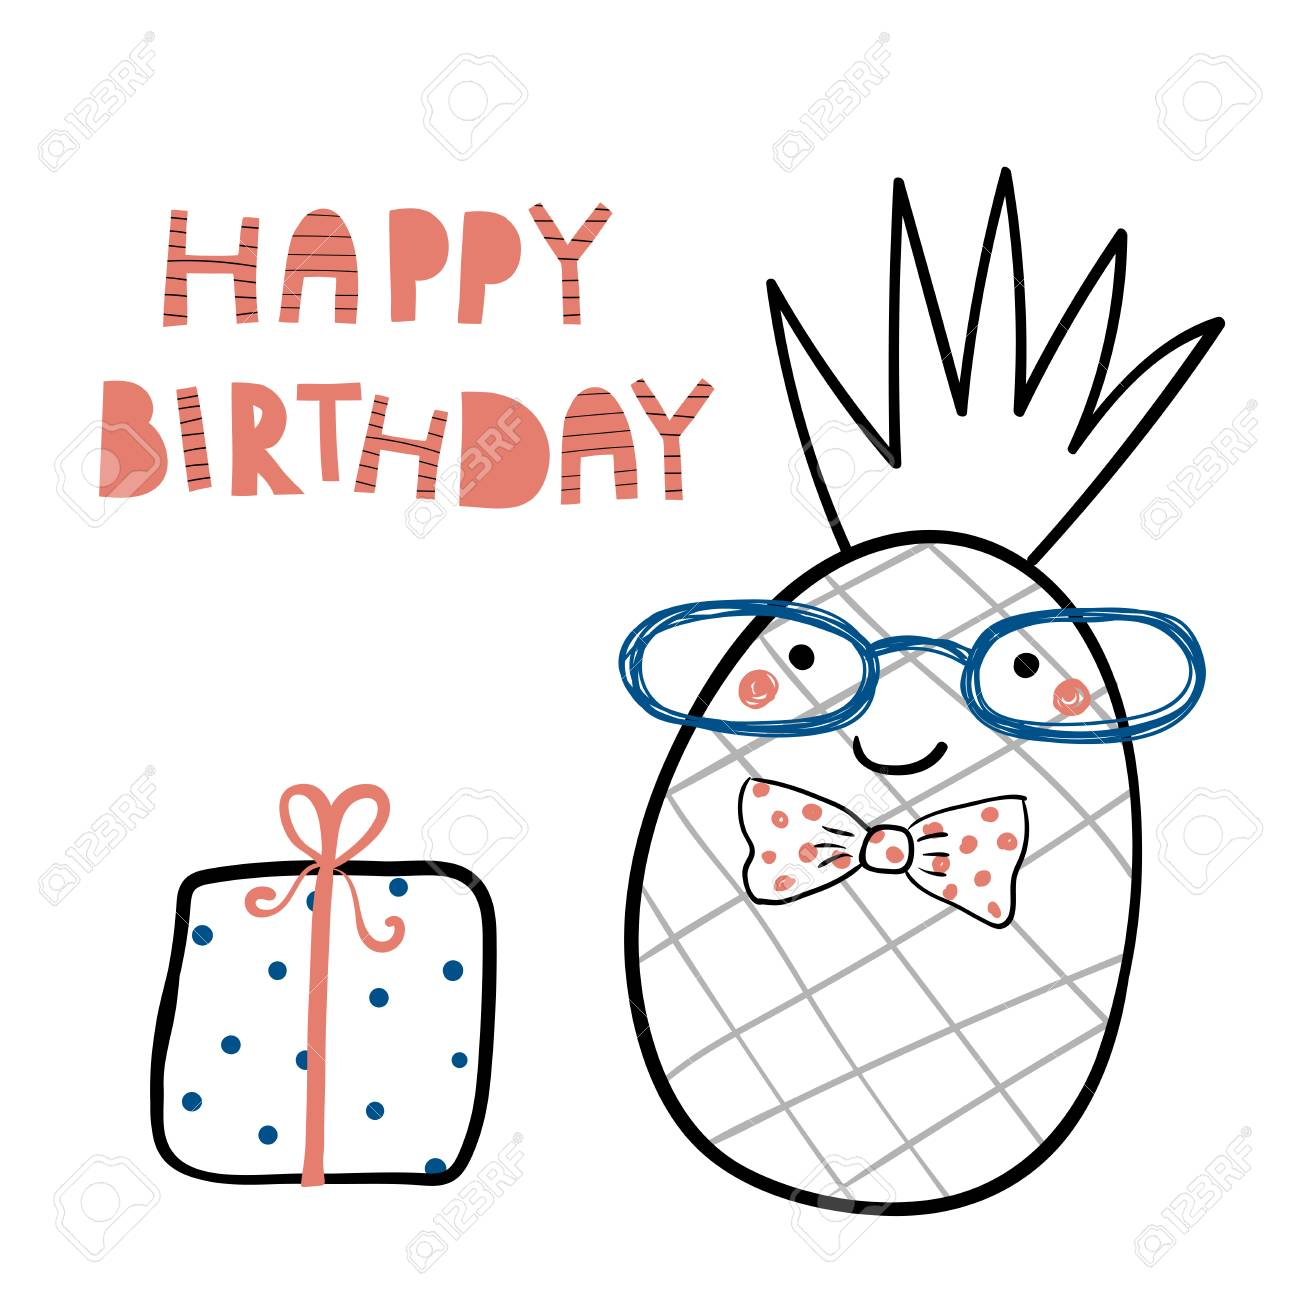 Hand Drawn Birthday Card With Cute Funny Pineapple In A Bow Tie Present Lettering